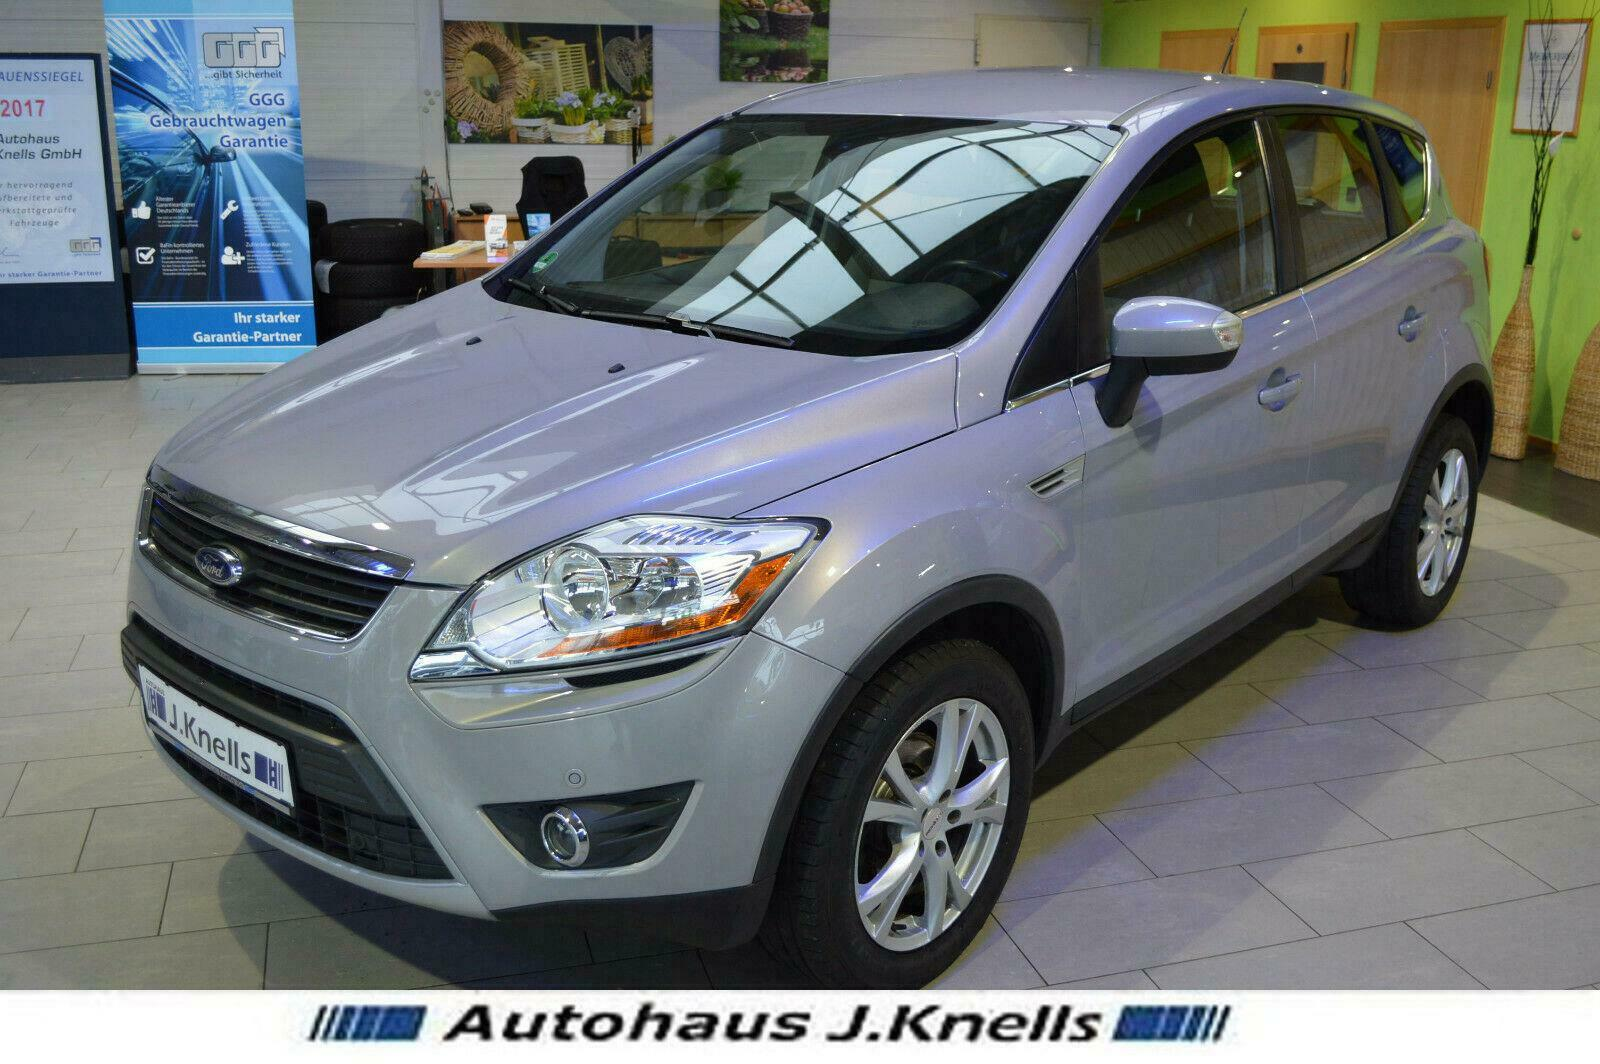 FORD Kuga Champions Edition 4x4/Orig.156800km/AHK/PDC